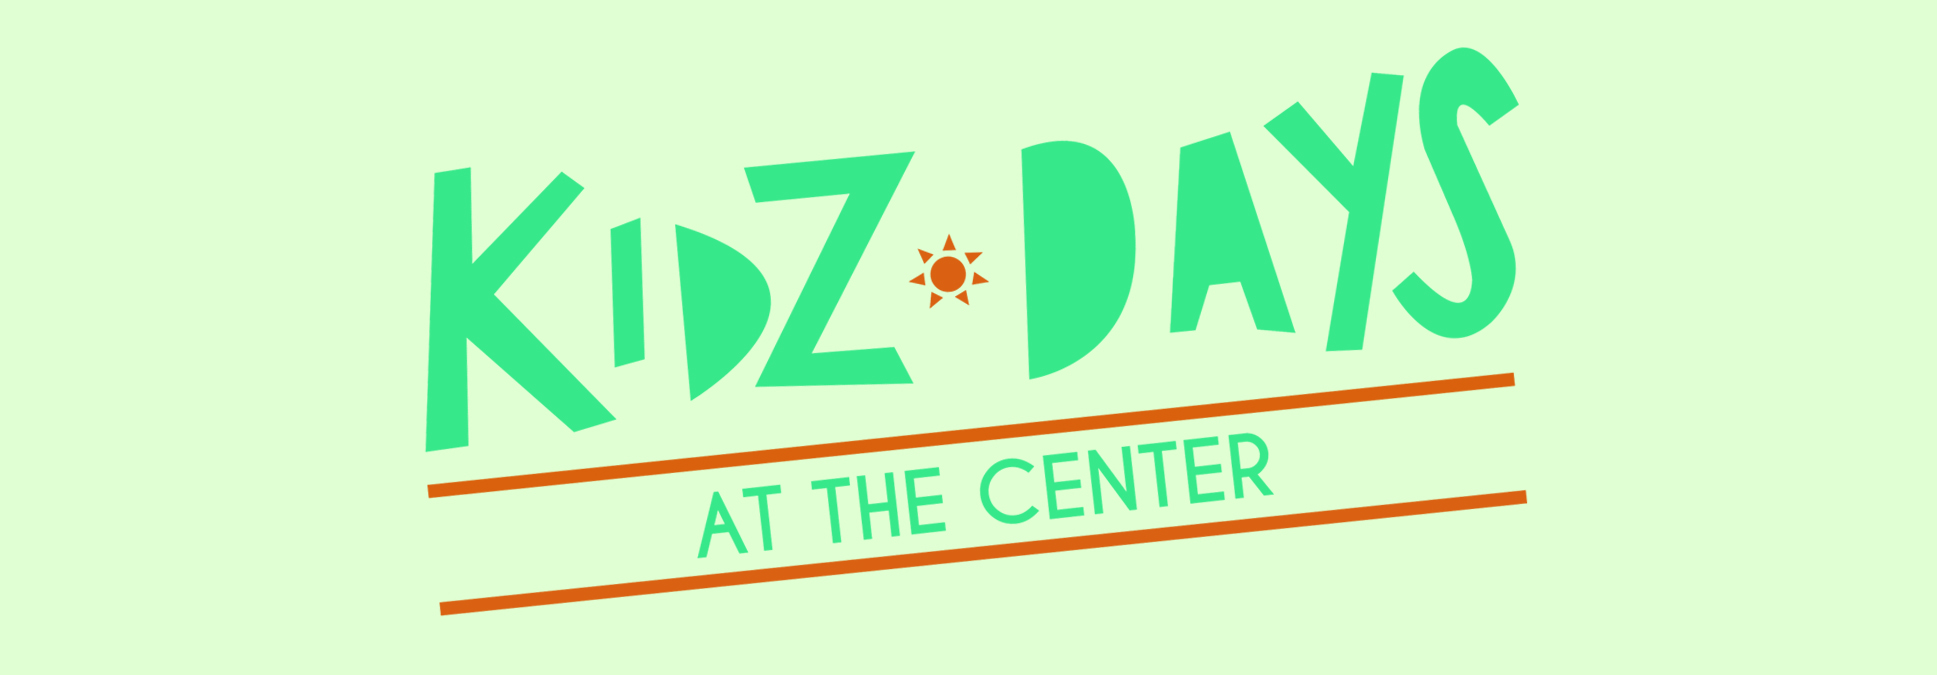 Milwaukee fun events for kids at the Marcus Center Kidz Days